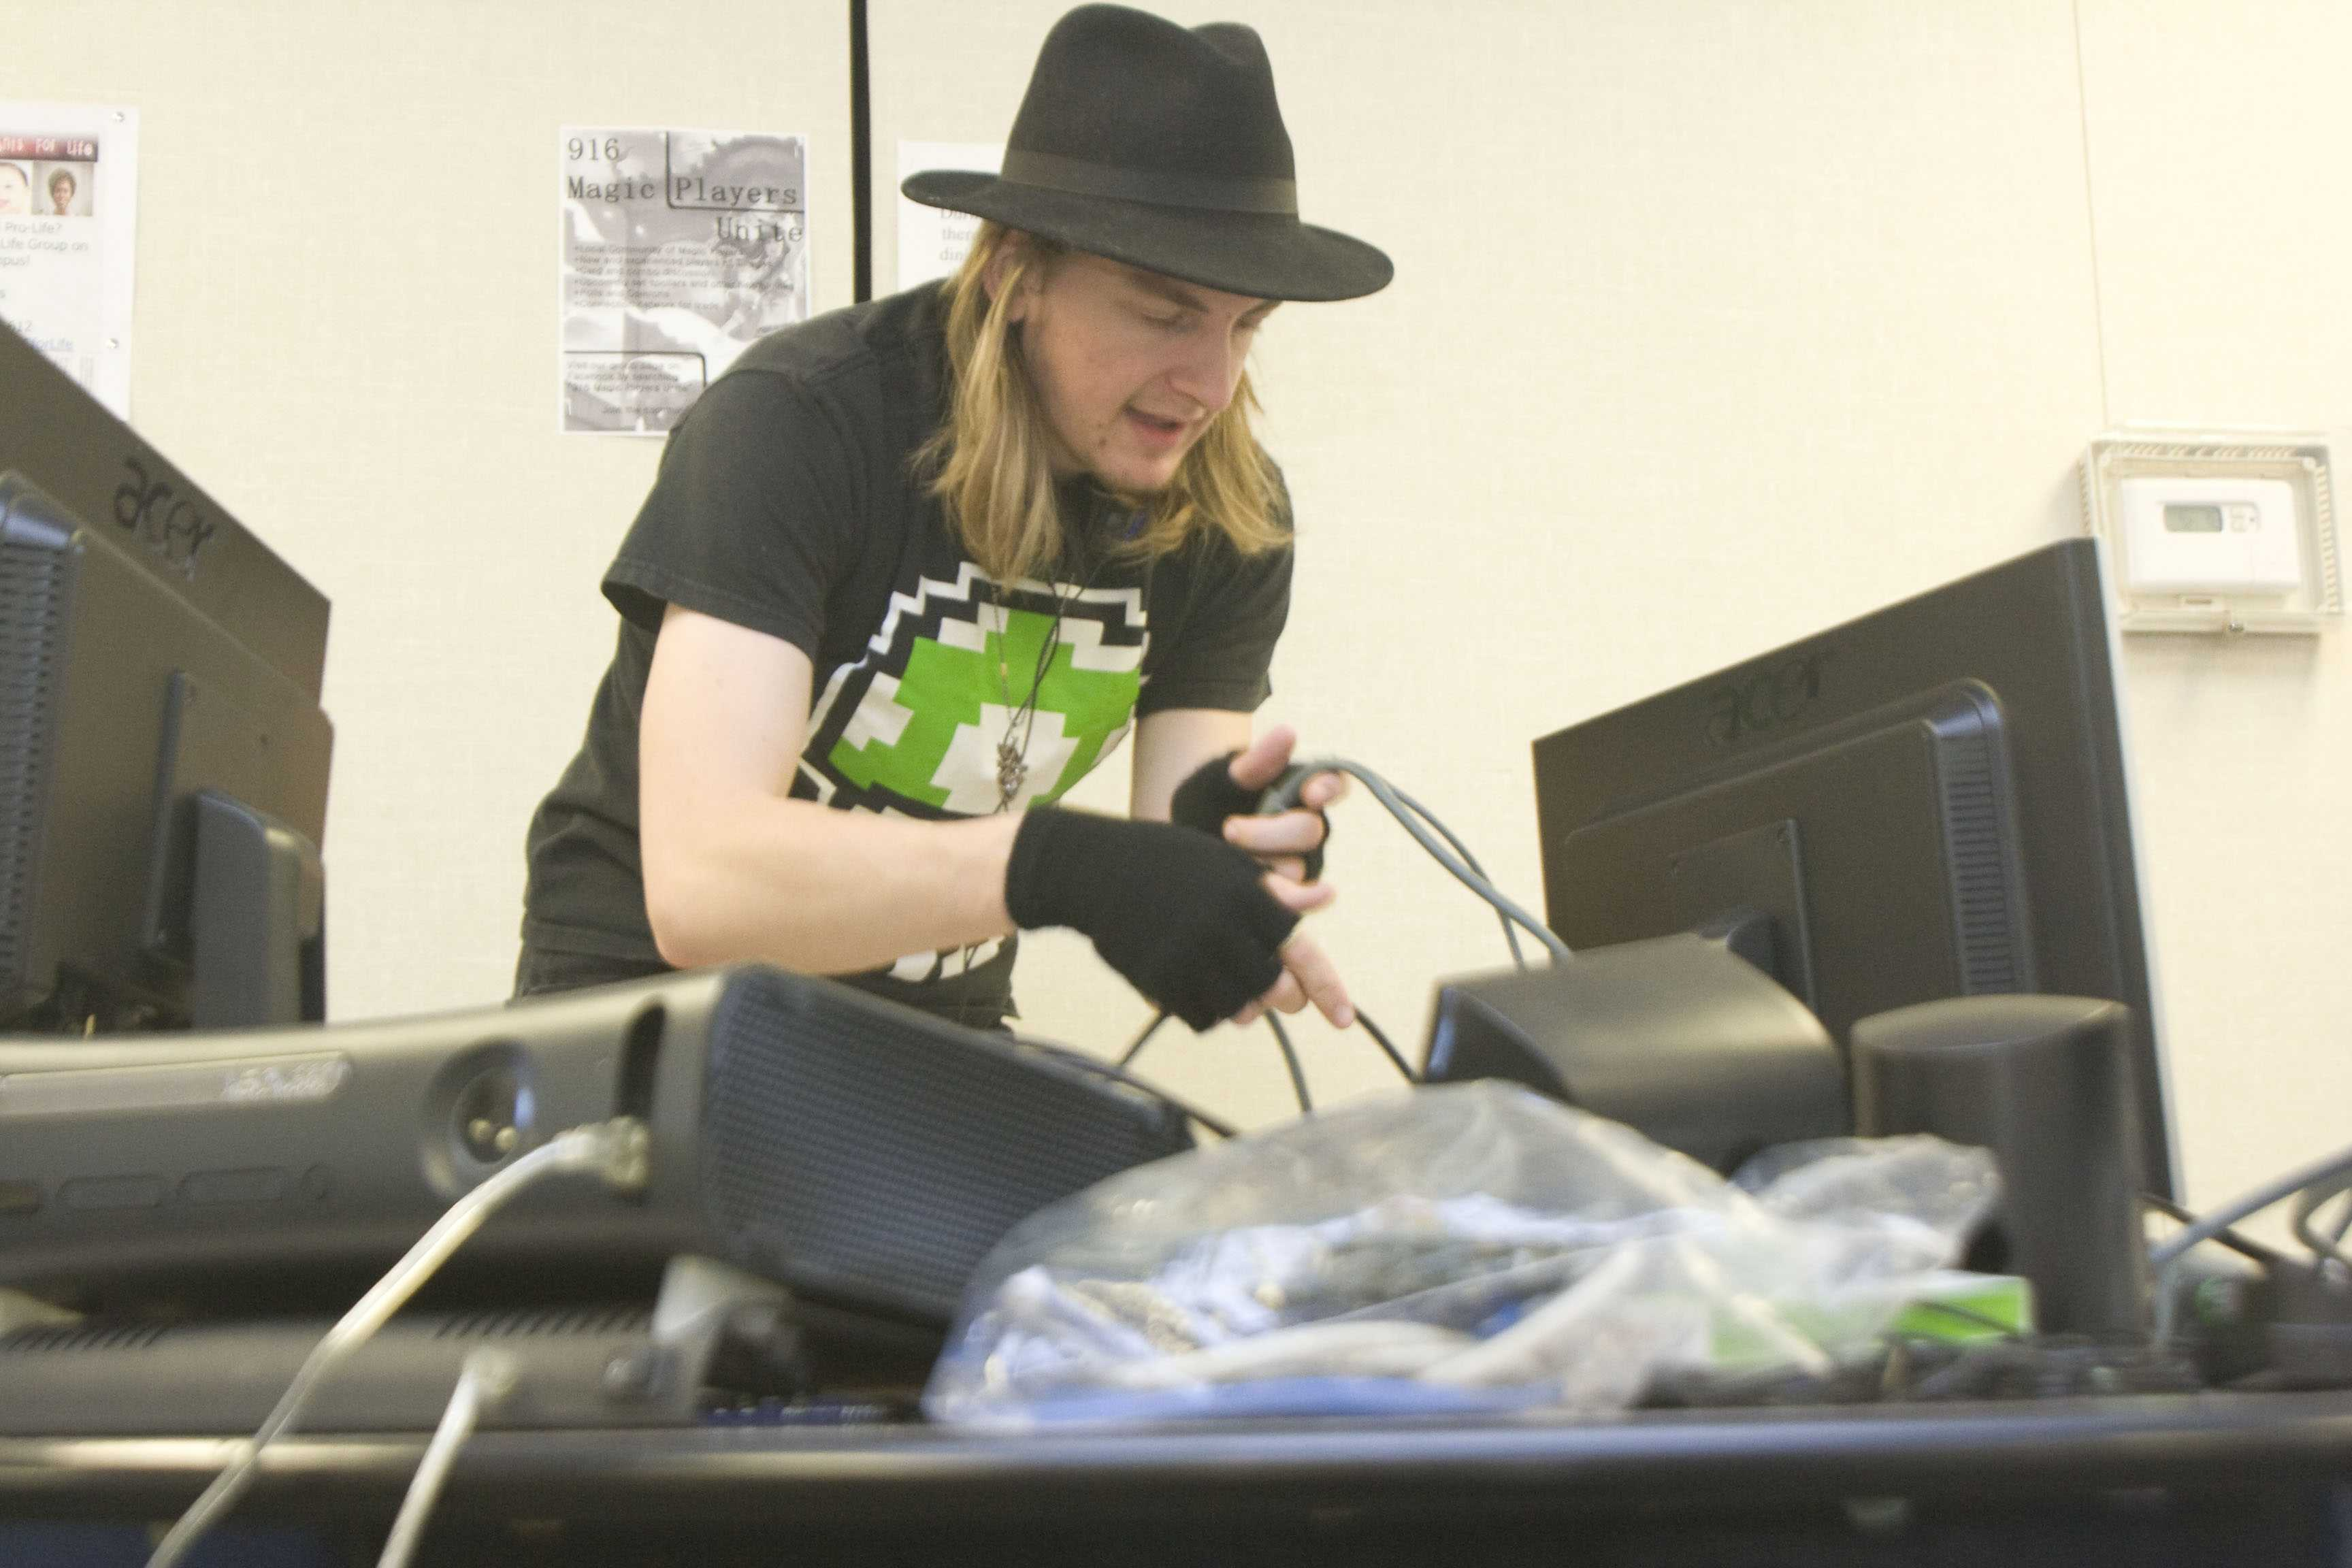 Psychology major Andrew Preston hooks up the wires to connect a PS3 and Xbox 360 console to the back of his computer monitors in the portable cafeteria on Nov. 22, 2011. (Photo by Demetric Good)